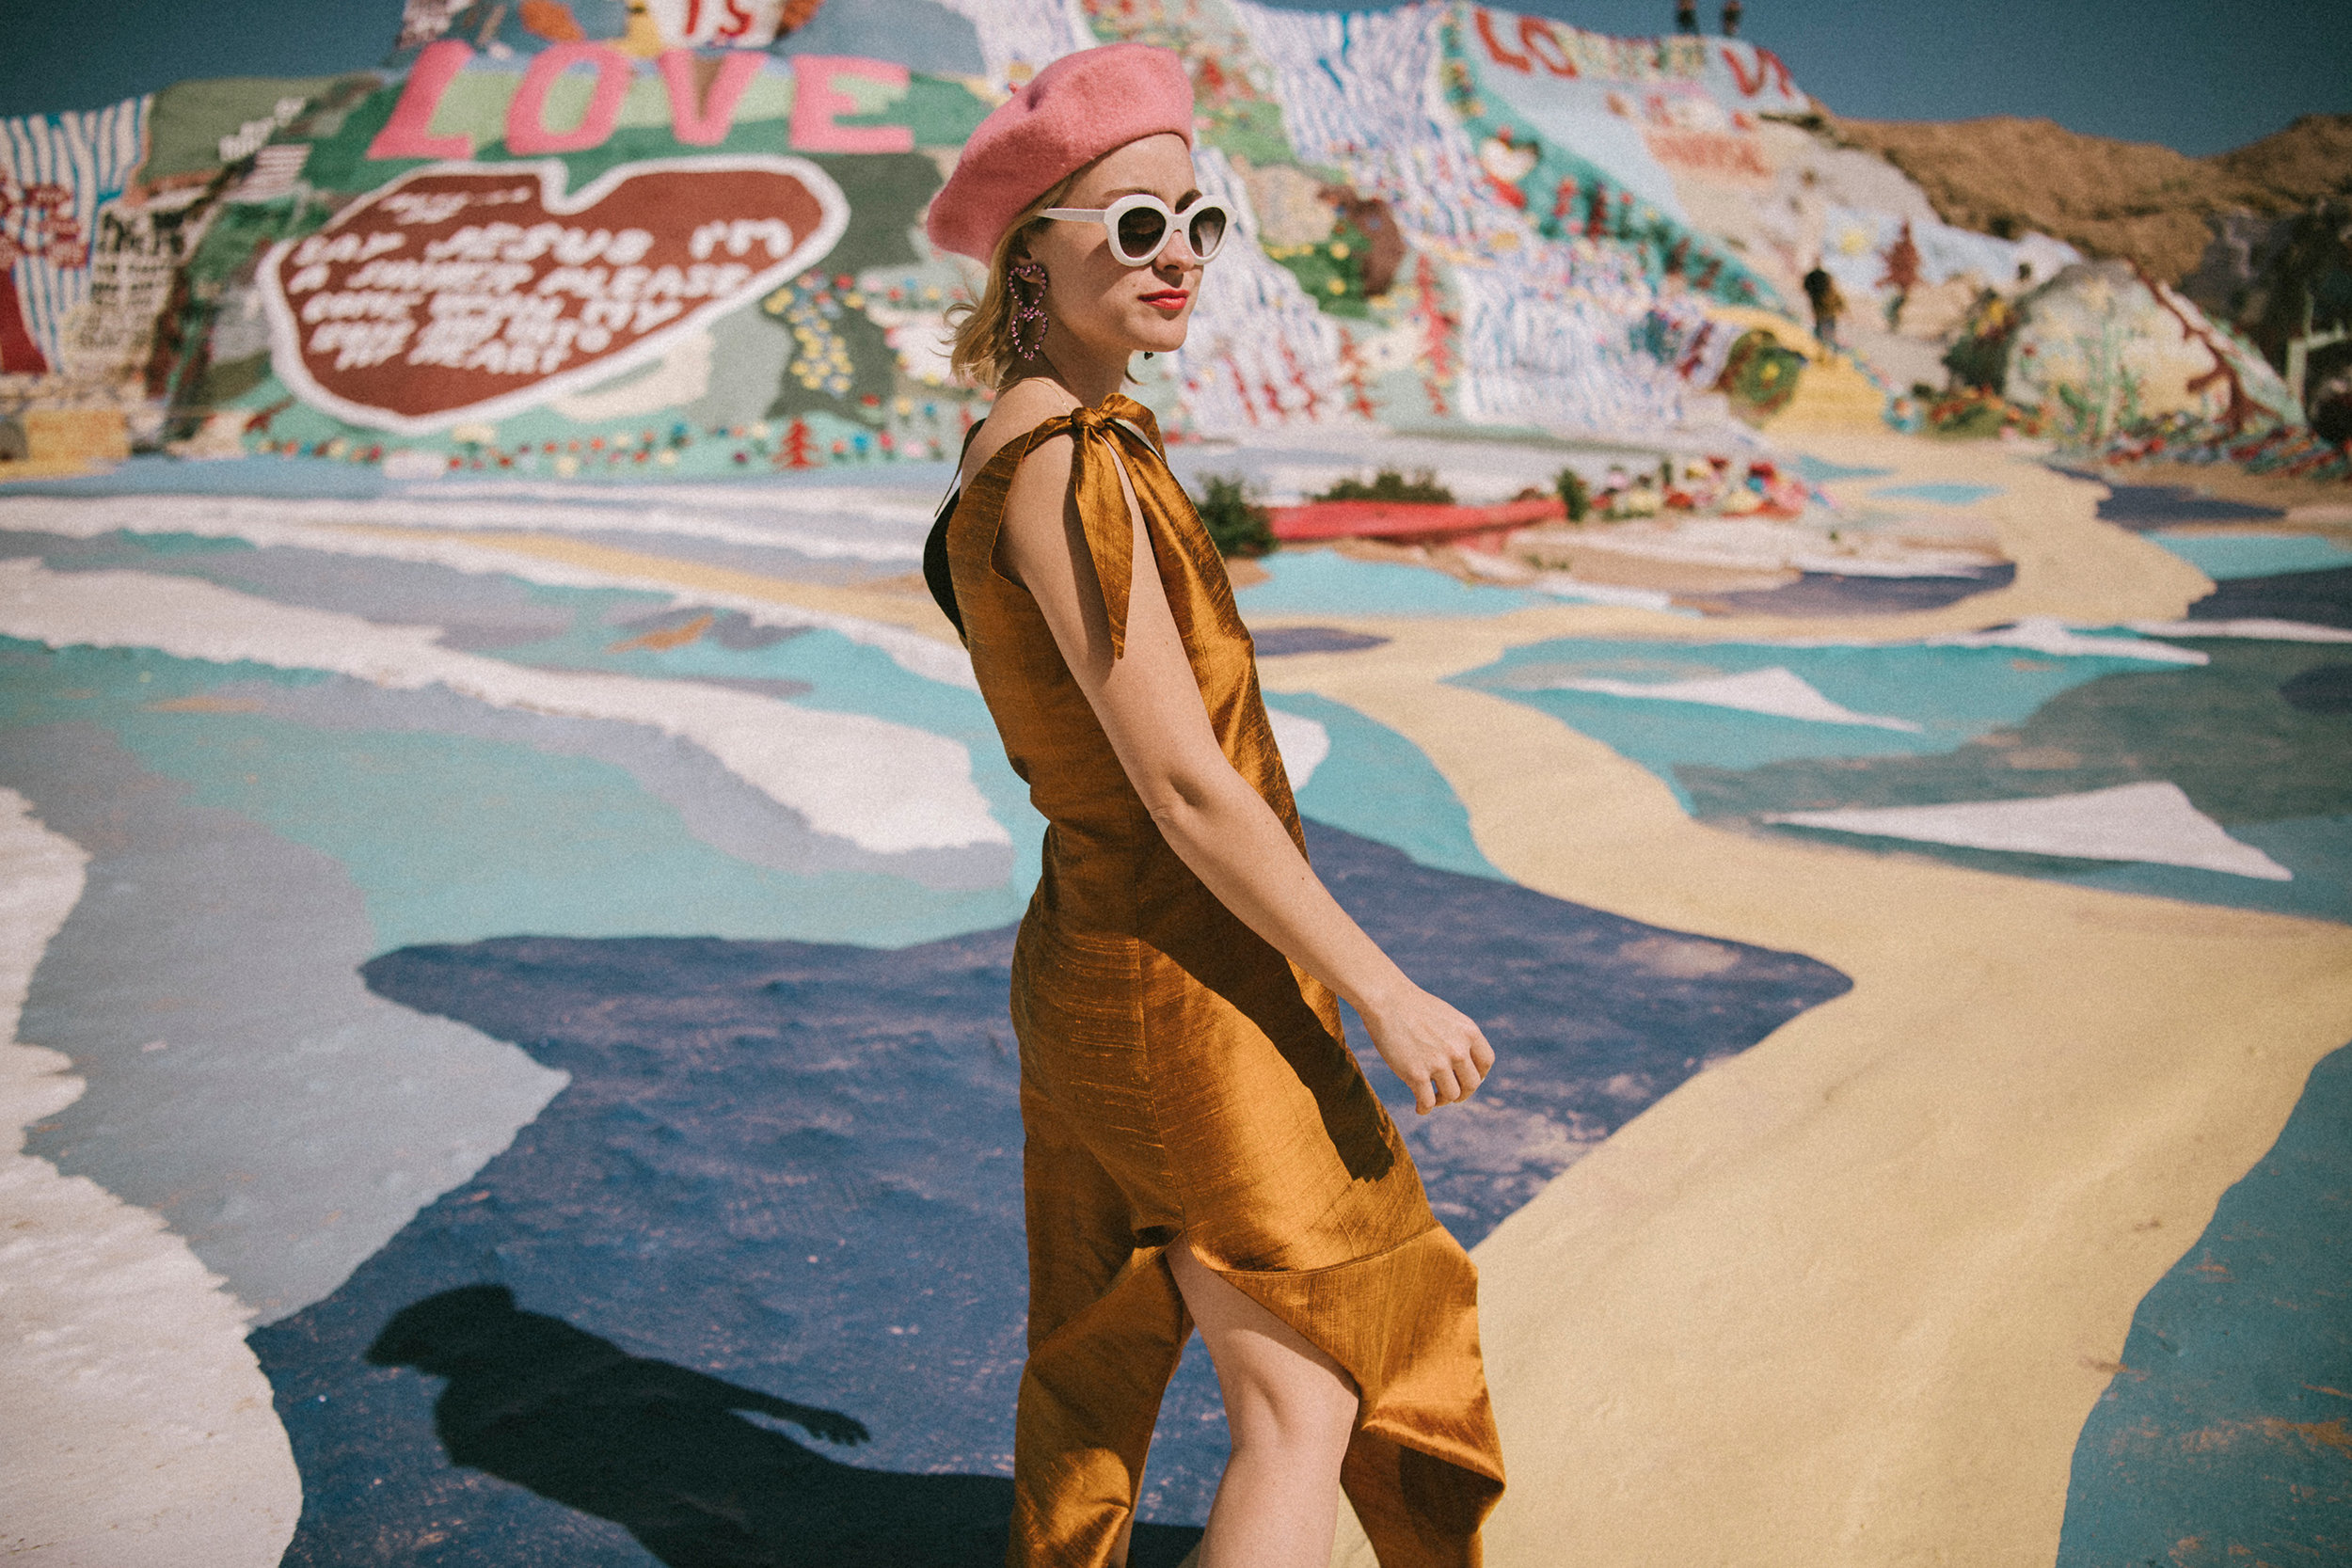 russian_red_viaje_valle_coachella_palm_springs_salvation_mountain_hoteles_turismo_playas_524006371_2700x1800.jpg